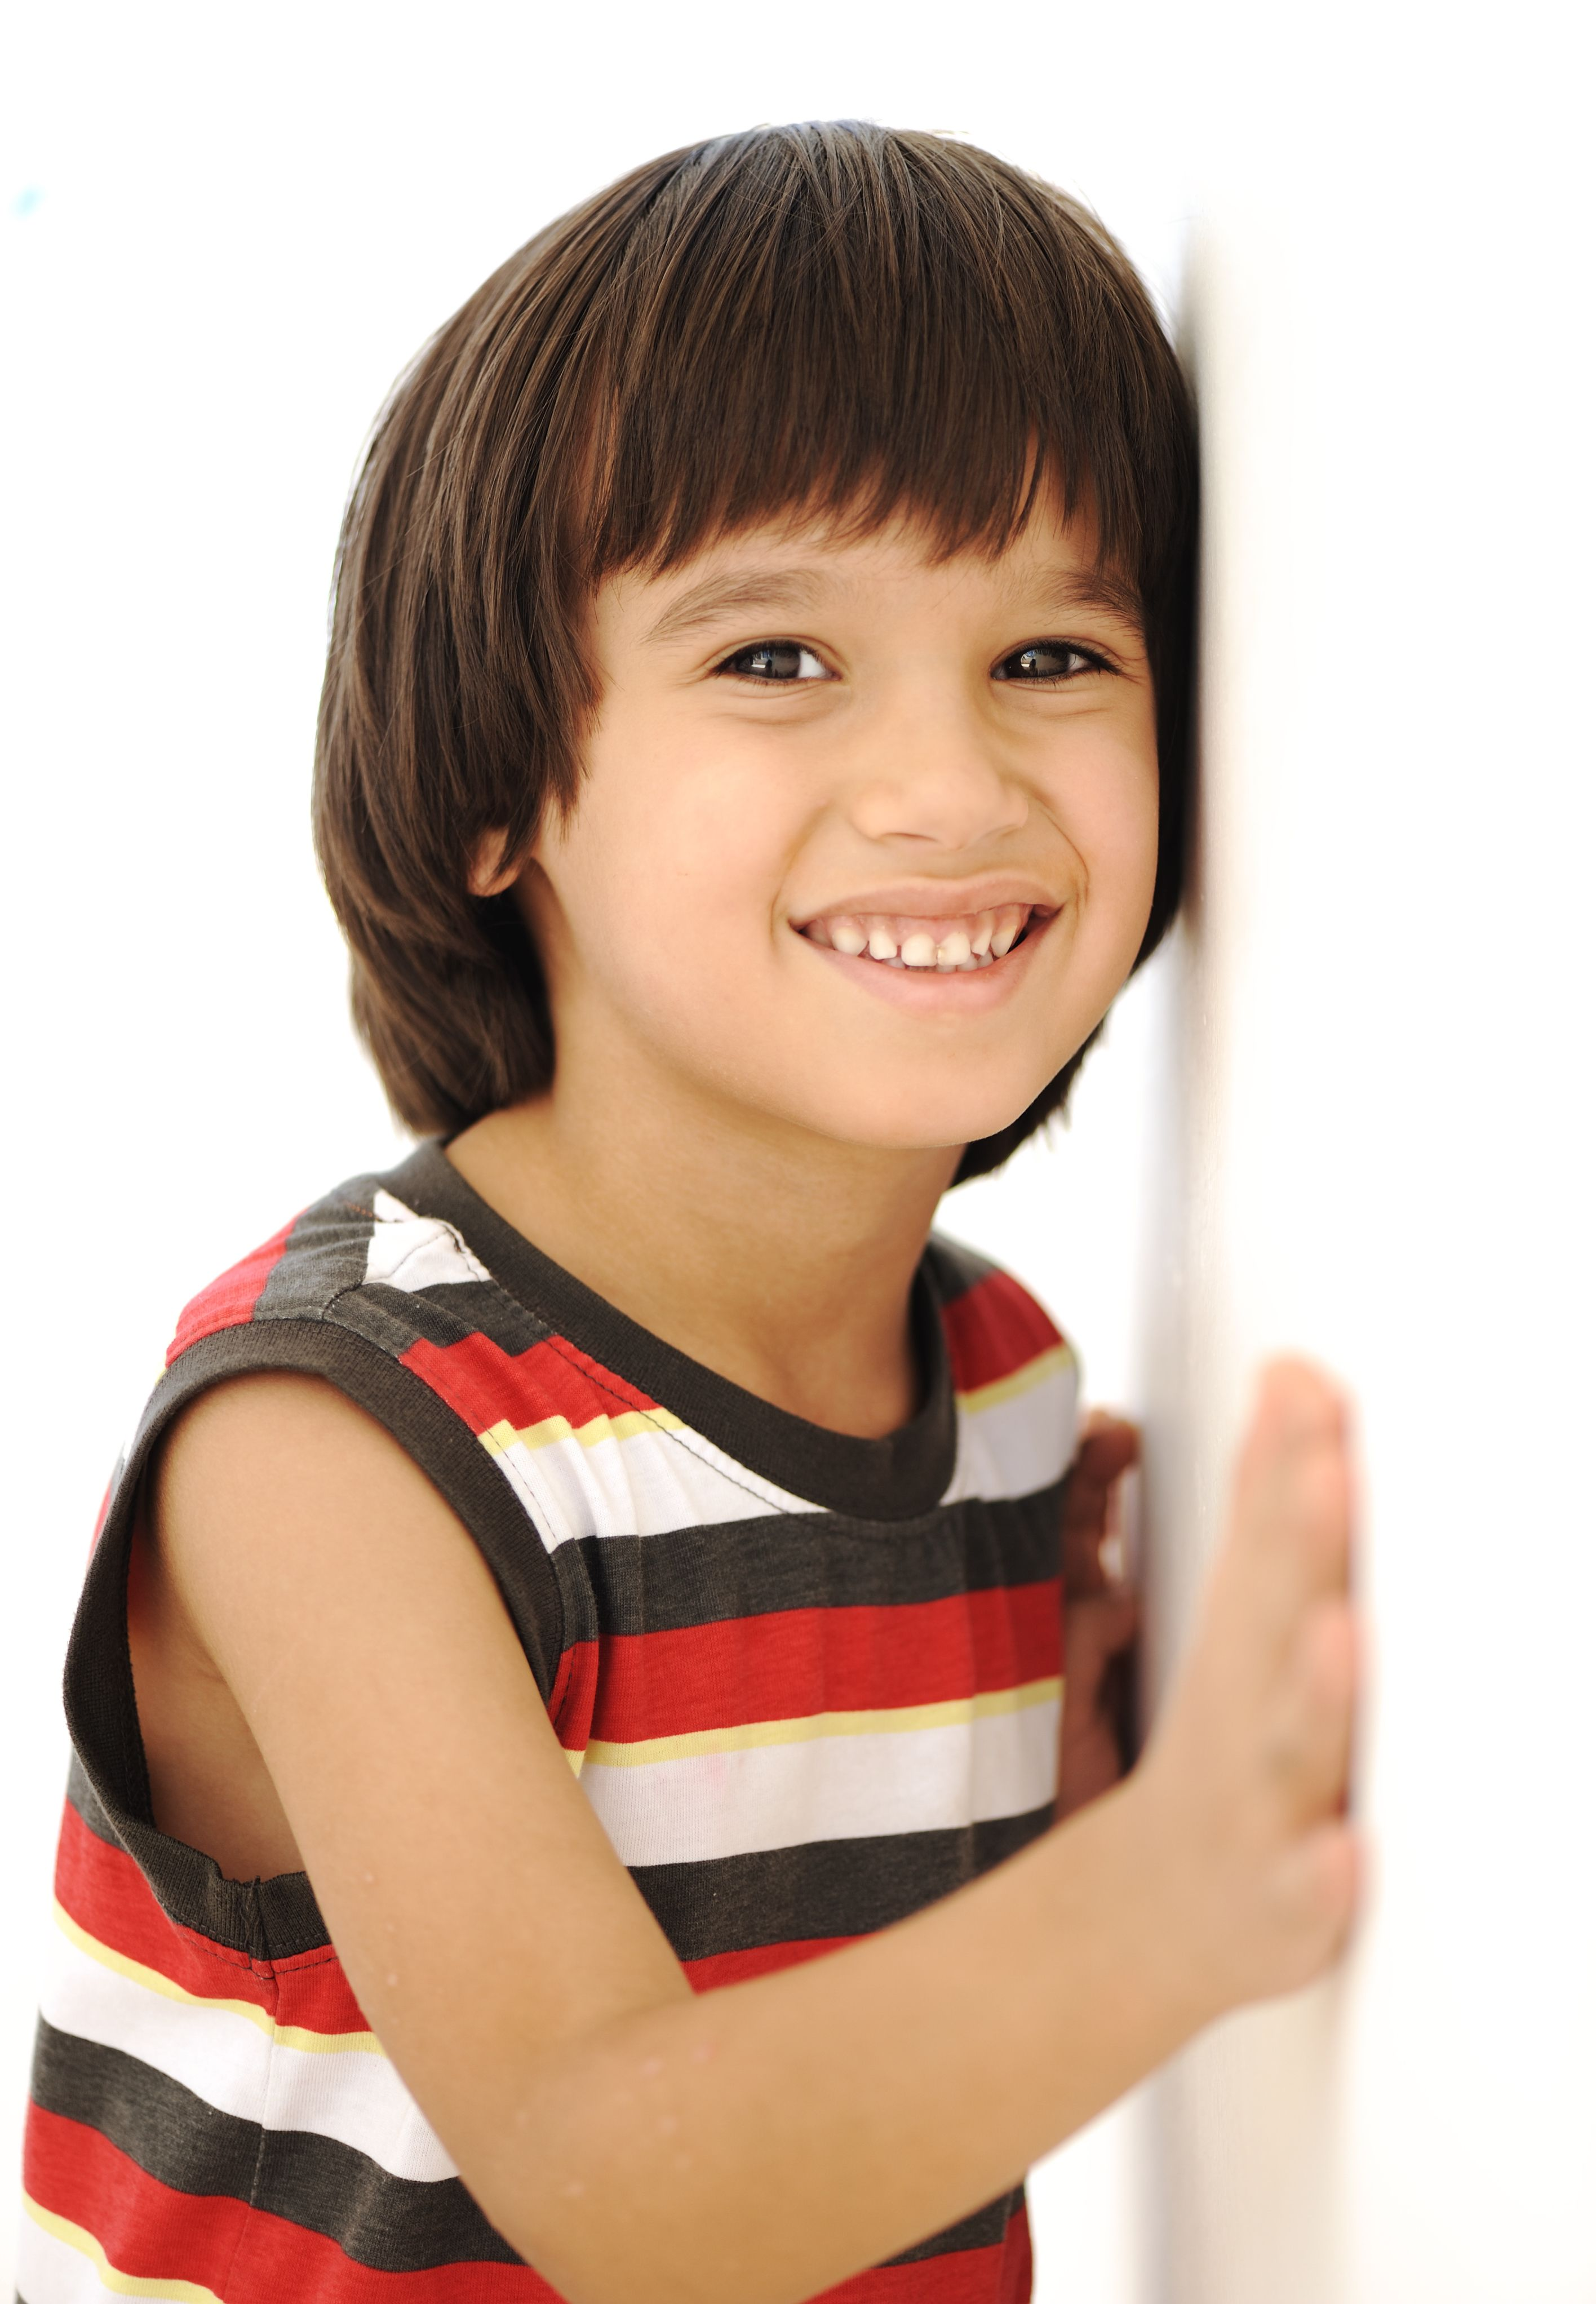 Boys long hairstyles one must try boys long hairstyles